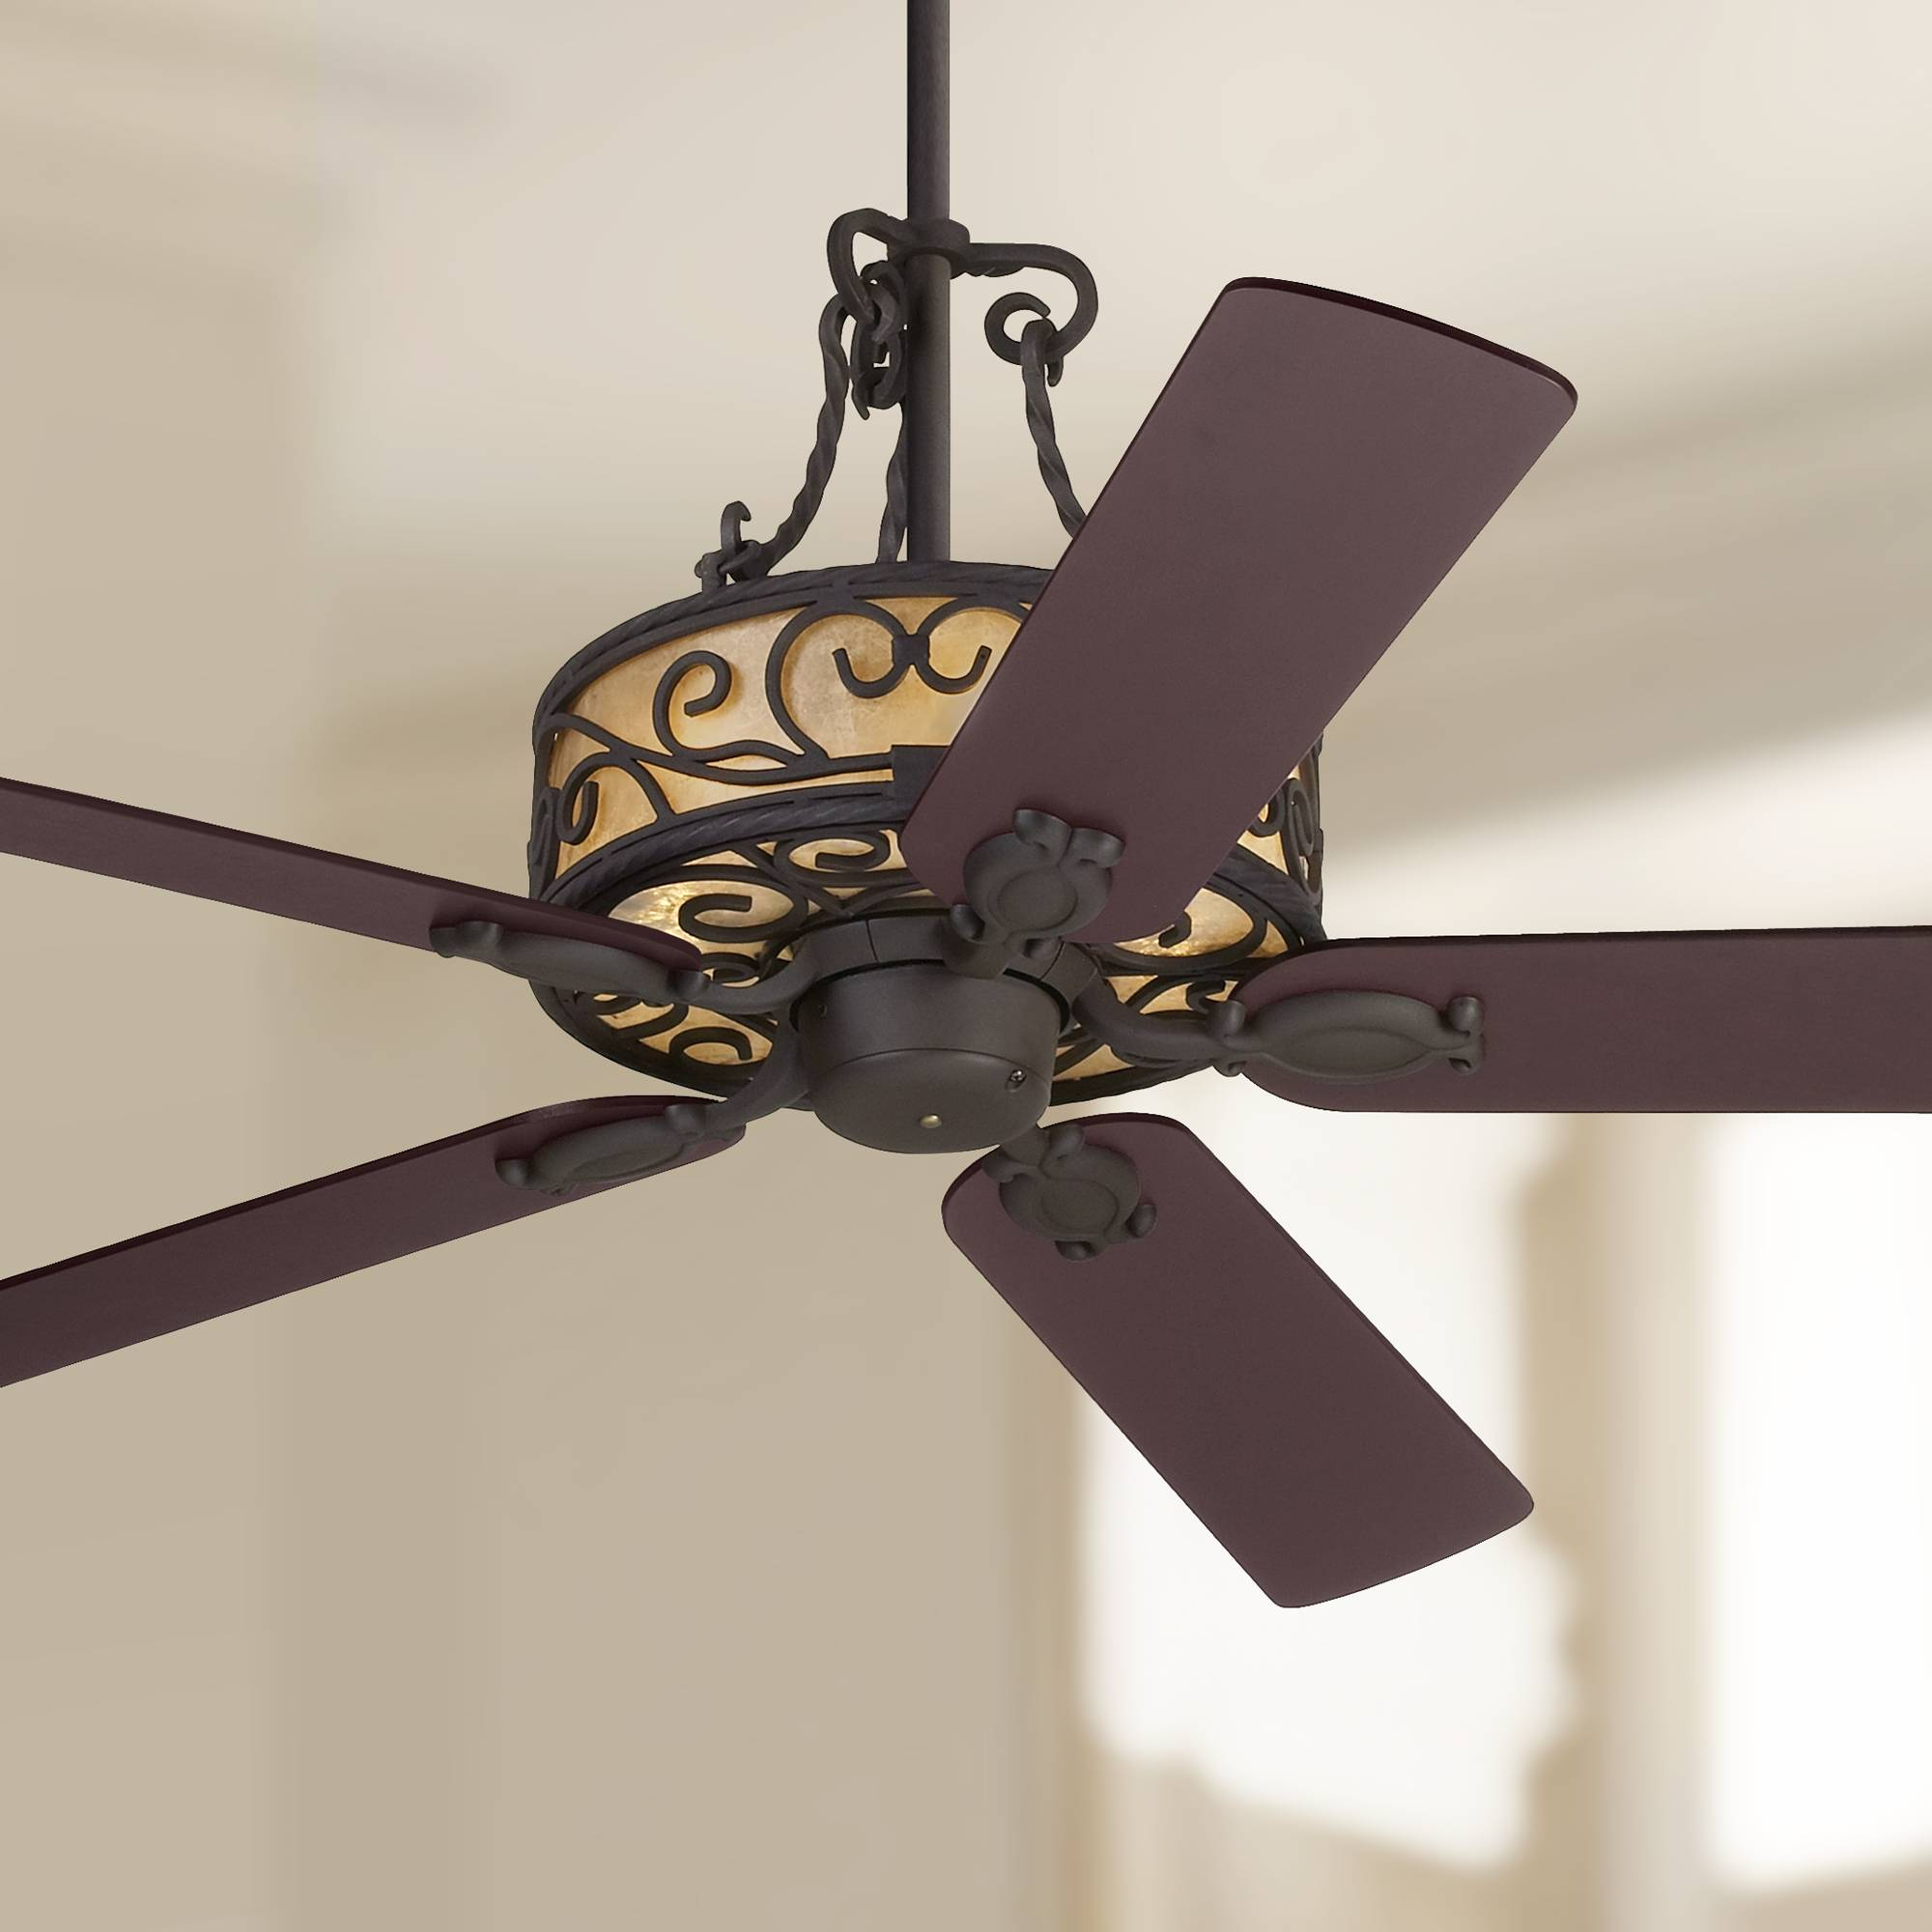 Details About 60 Rustic Ceiling Fan With Light Led Natural Mica Iron For Living Room Kitchen